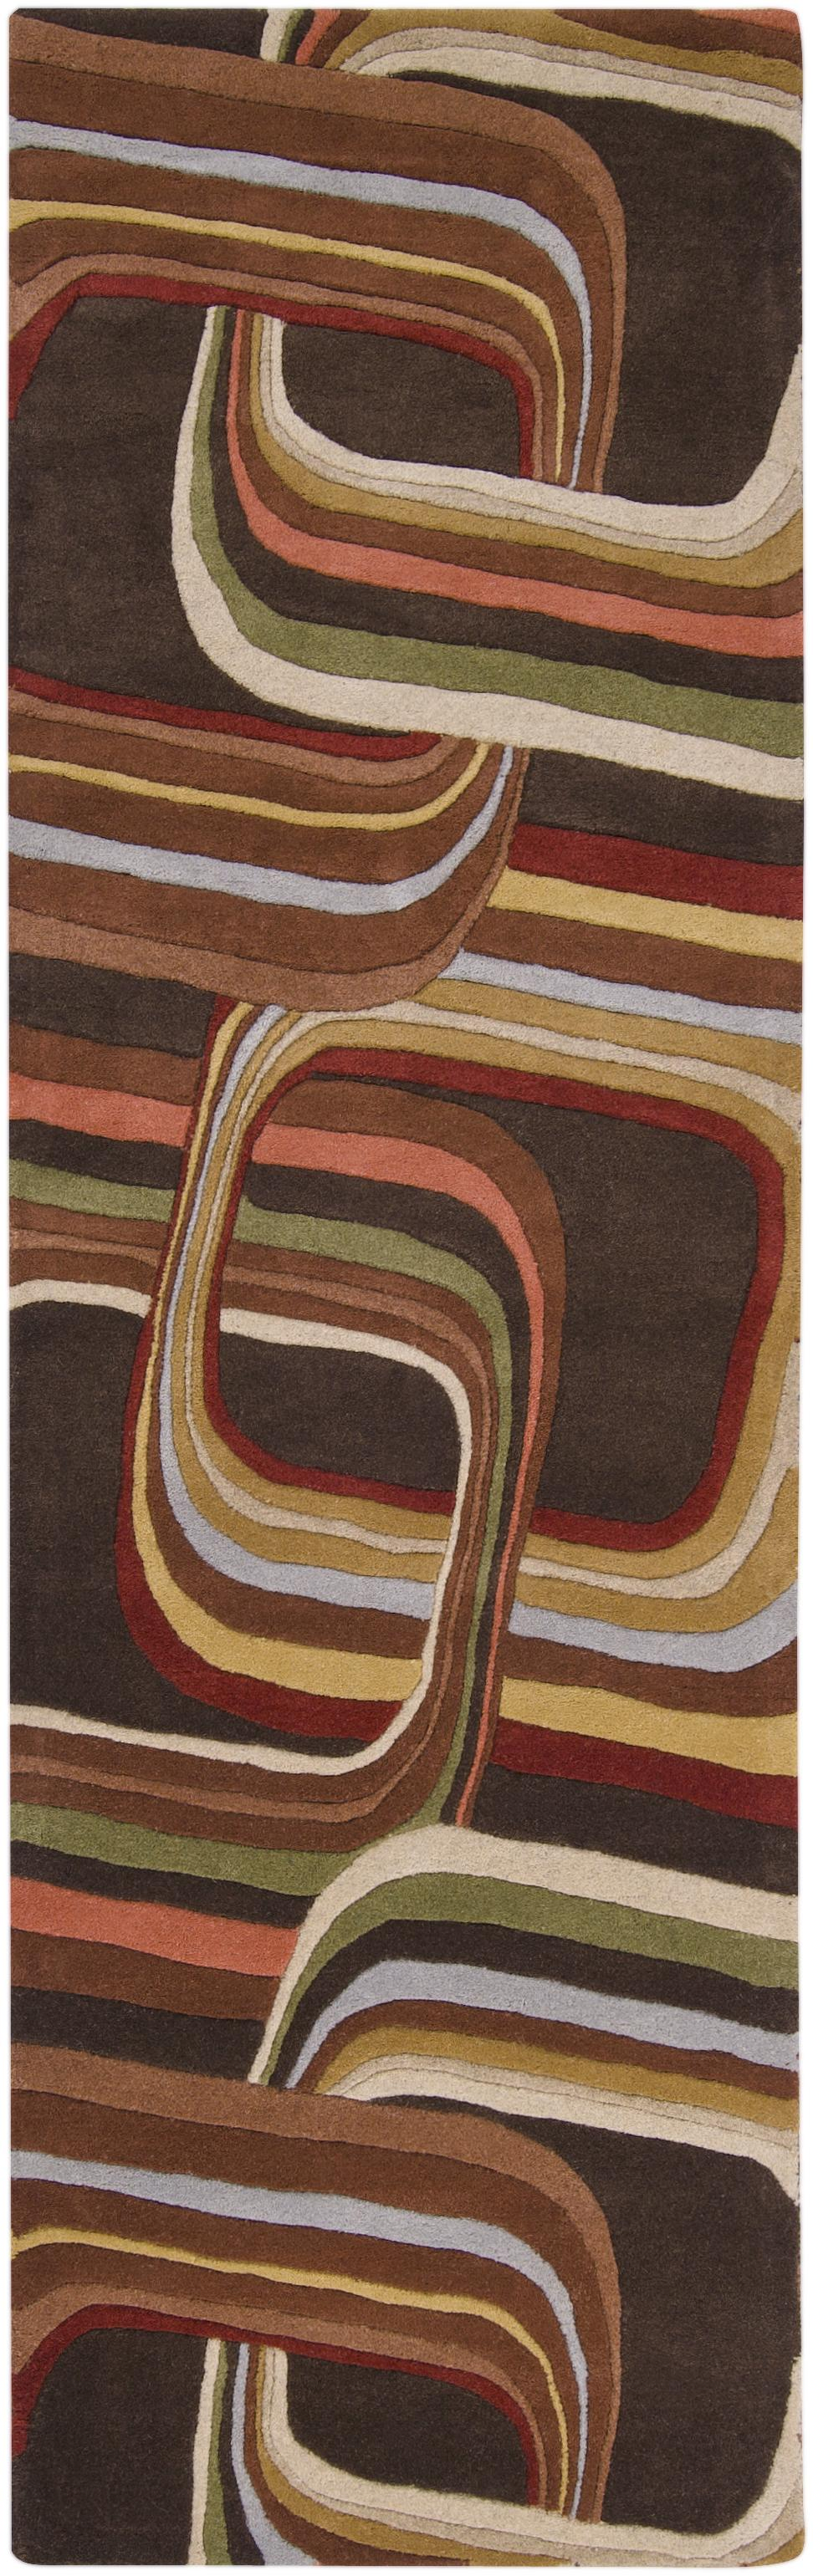 "Surya Rugs Forum 2'6"" x 8' - Item Number: FM7007-268"